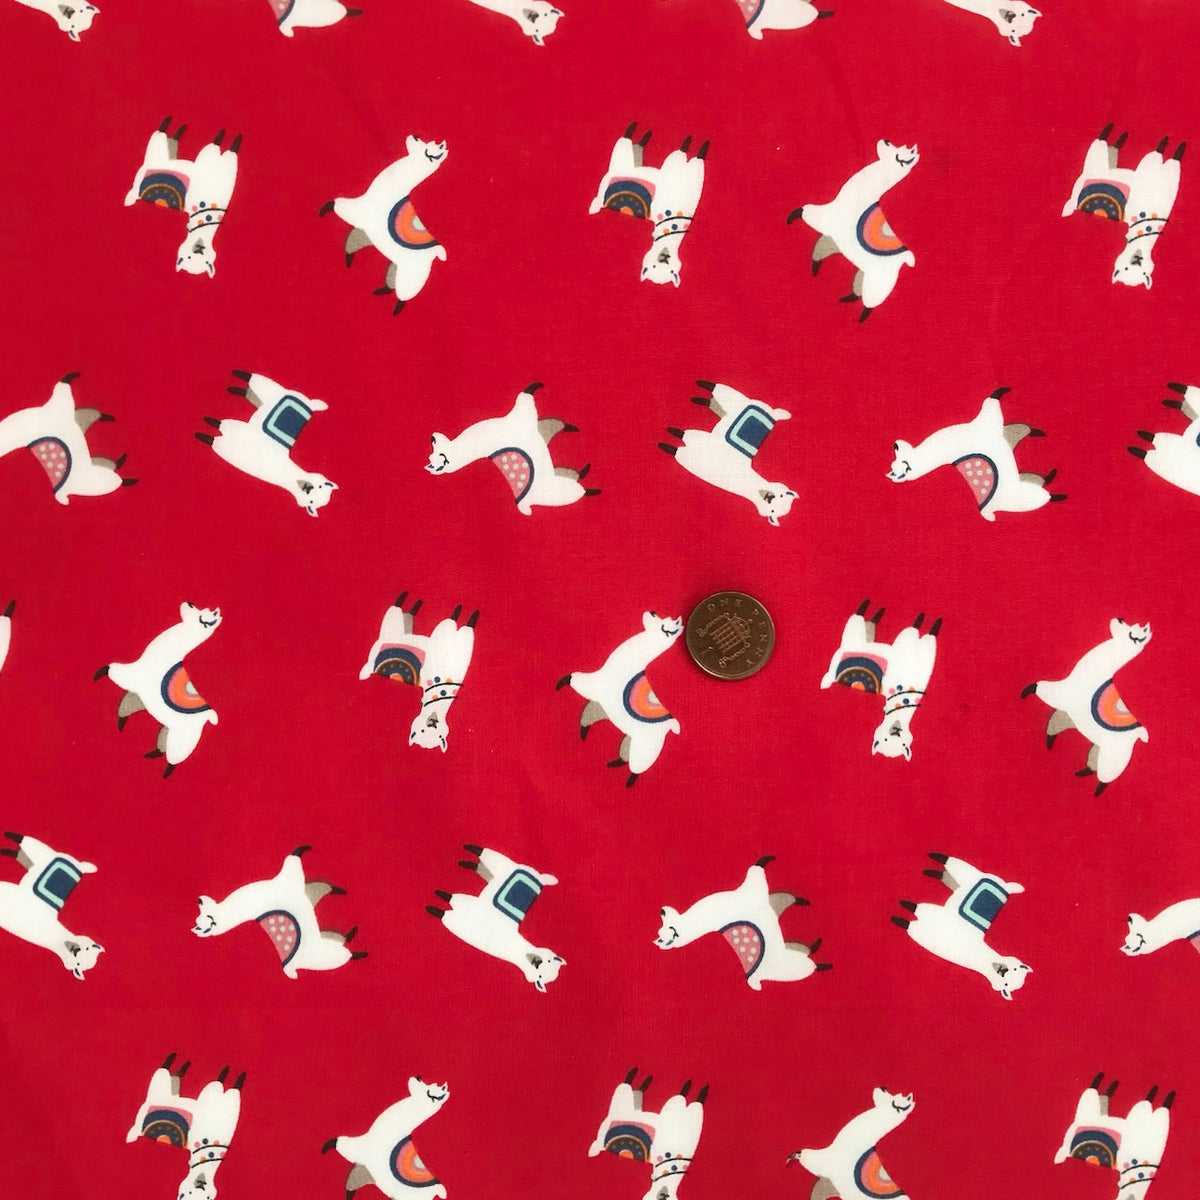 Red Llama Fabric Polycotton Per 1/2 Metre 112cm Wide